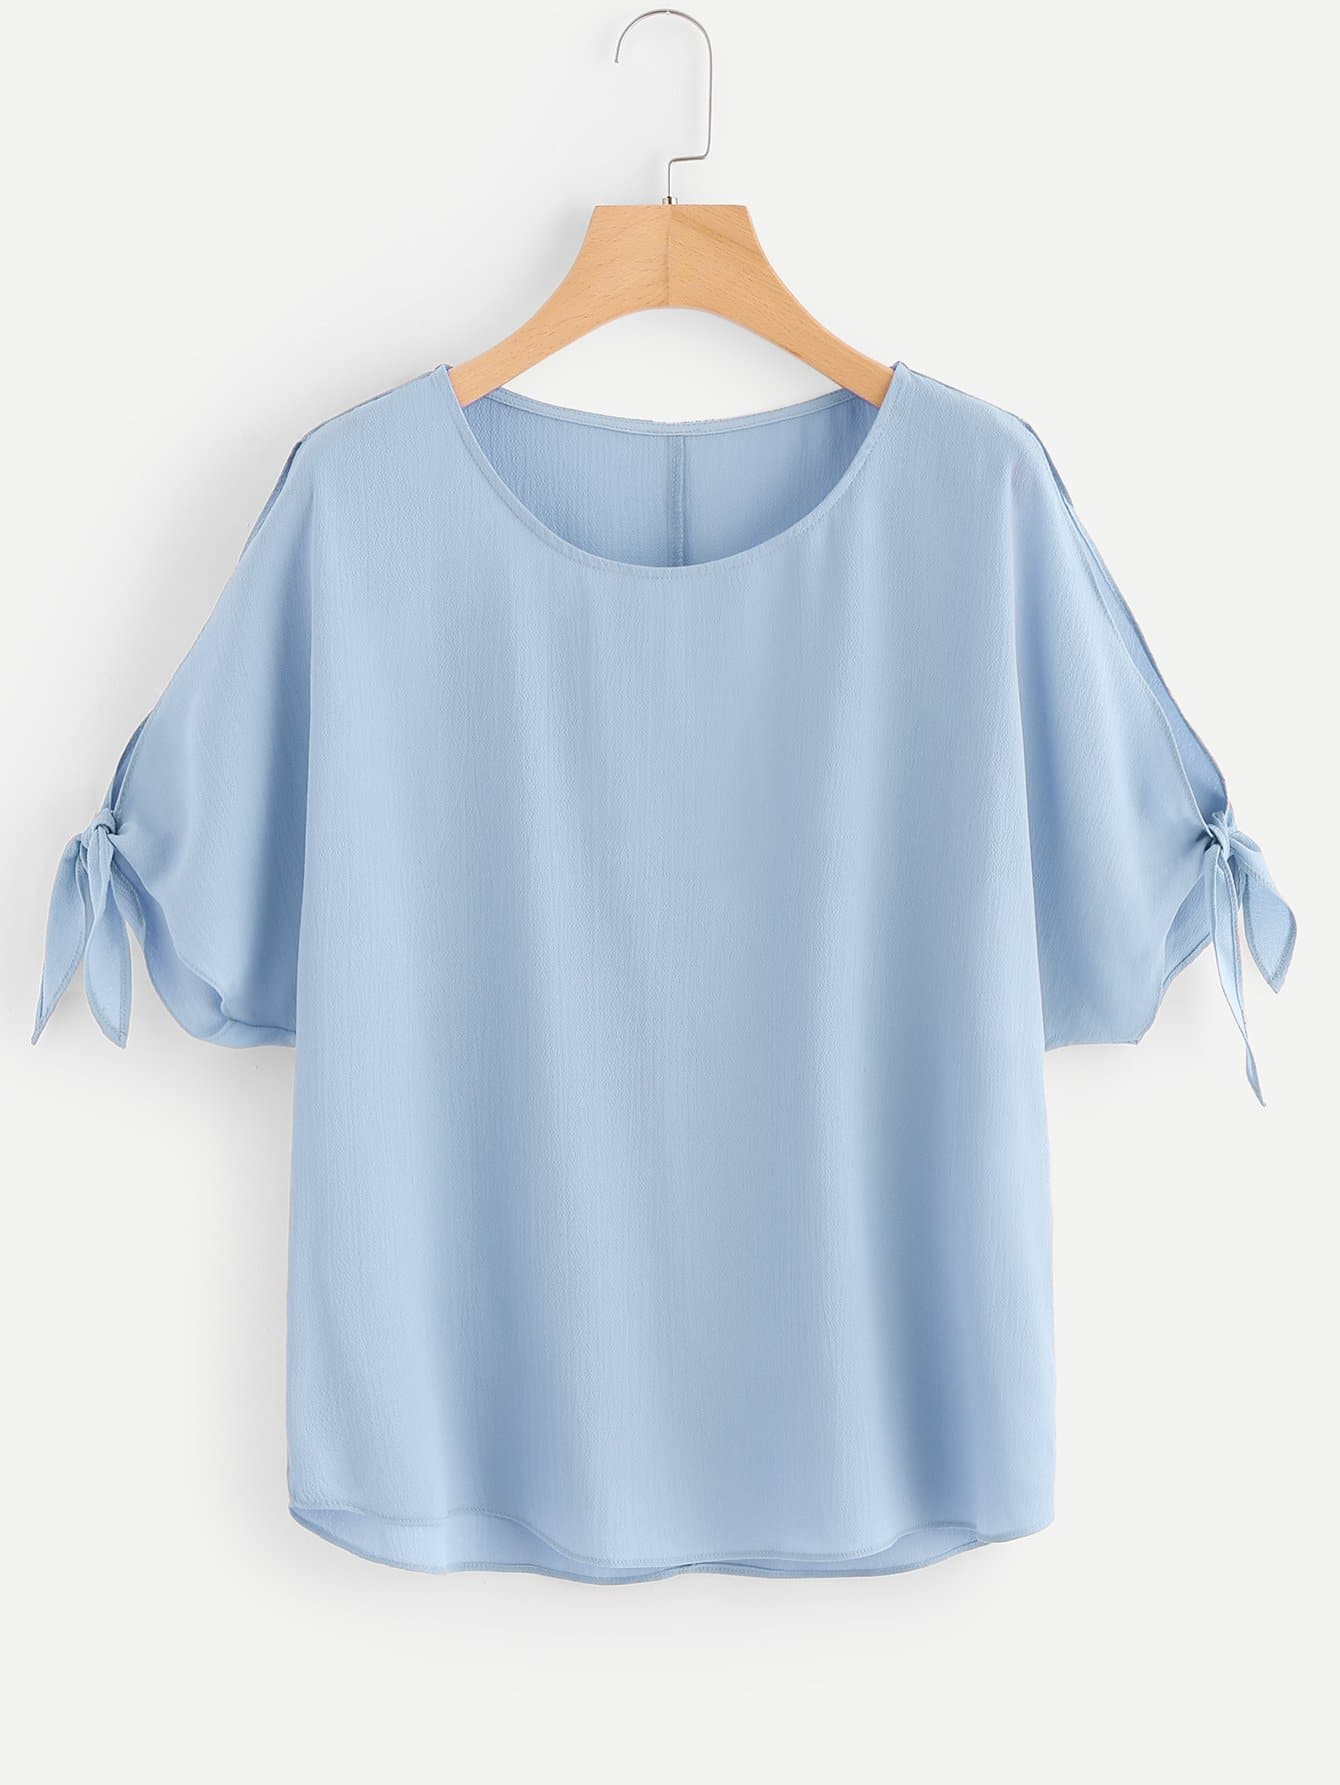 Split Sleeves With Knot Detail Blouse sheer dotted blouse with smocked detail